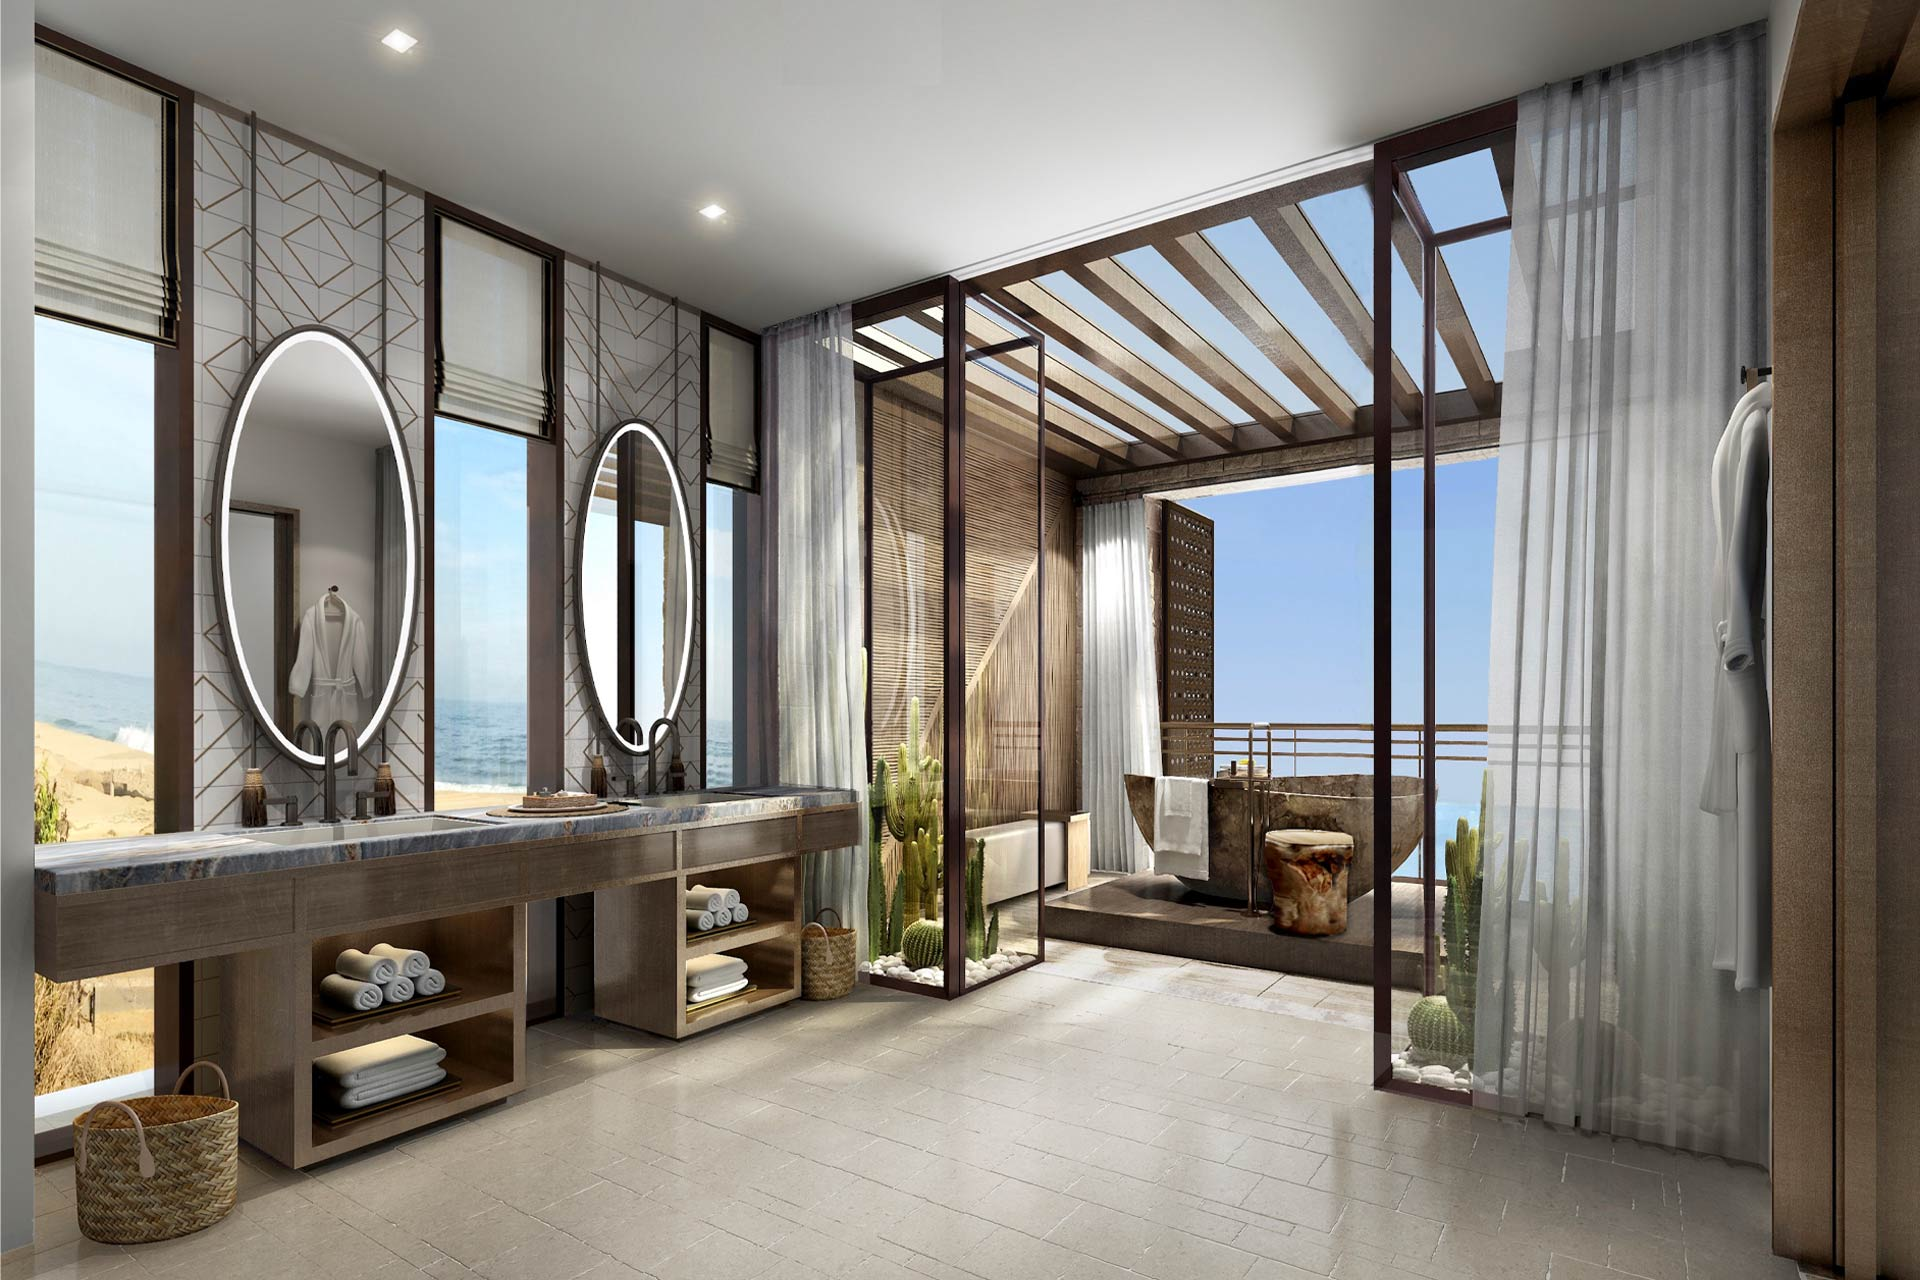 A rendering of The St. Regis Los Cabos in Mexico